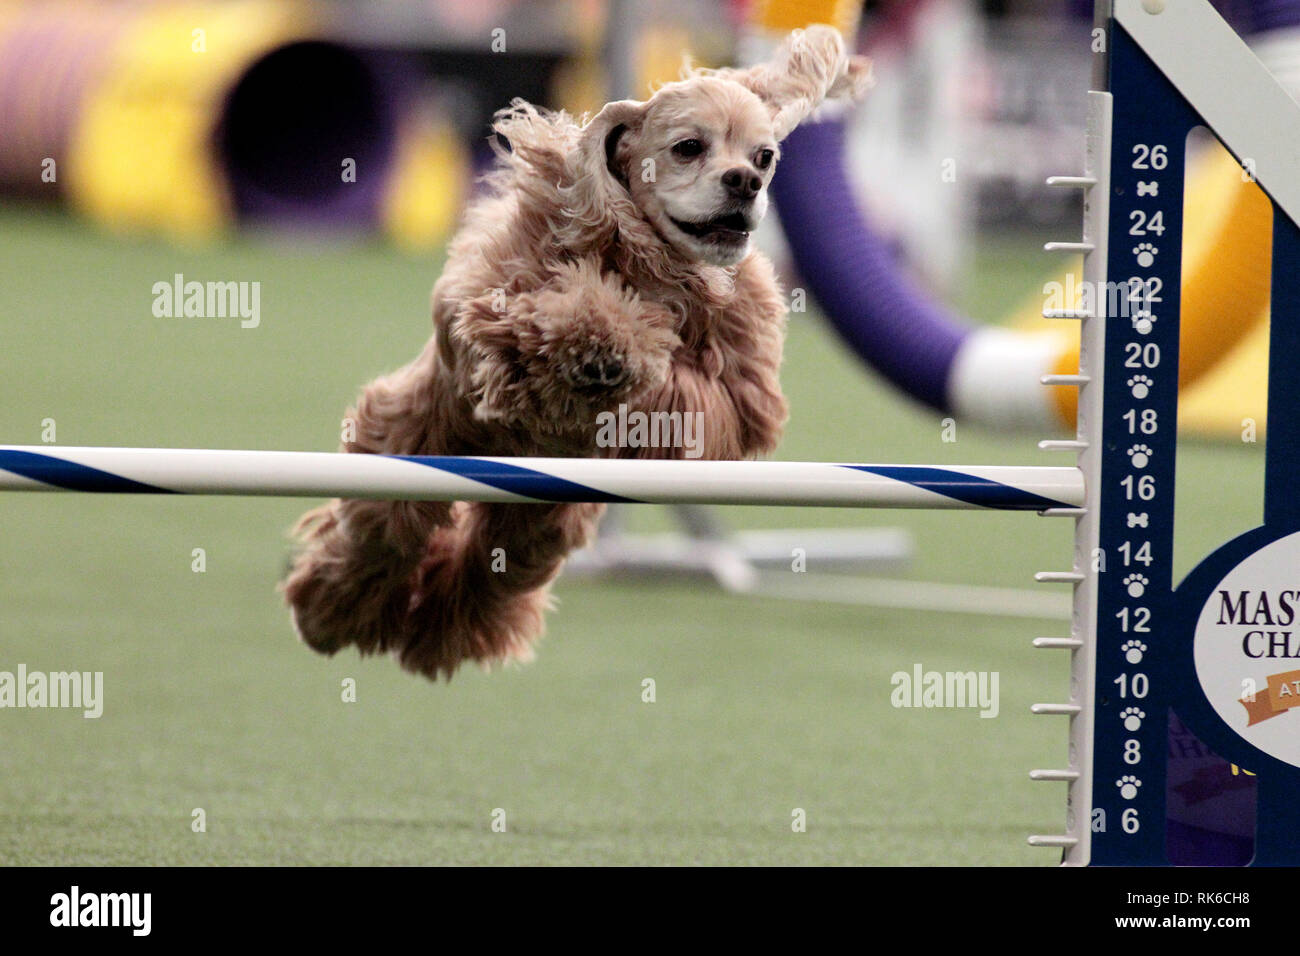 Westminster Dog Show - 9 February 2019, New York City:  Joey, a Cocker Spaniel, competing in the preliminaries of the Westminster Kennel Club's Master's Agility Championship. Stock Photo